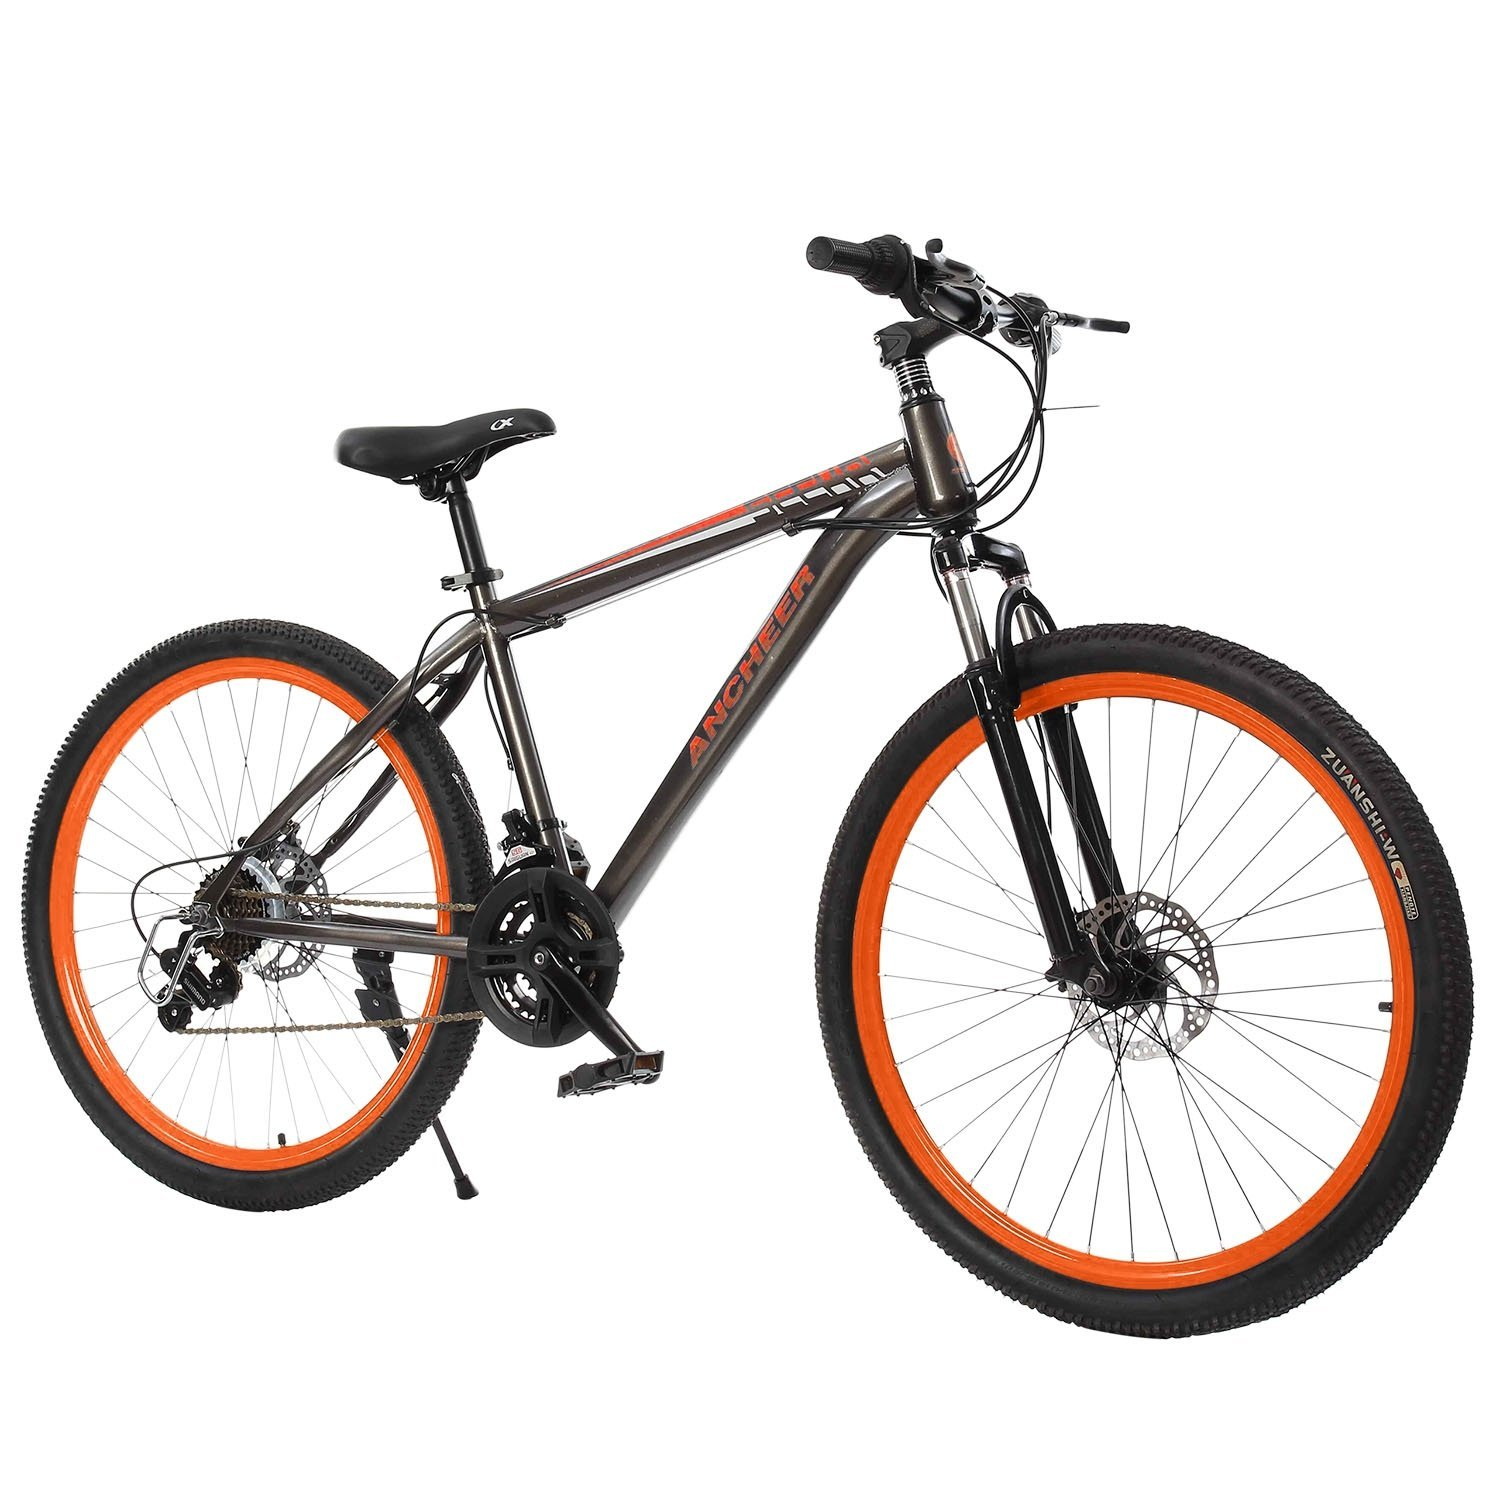 Ancheer Hybrid Men's Seeker Mountain Bicycle